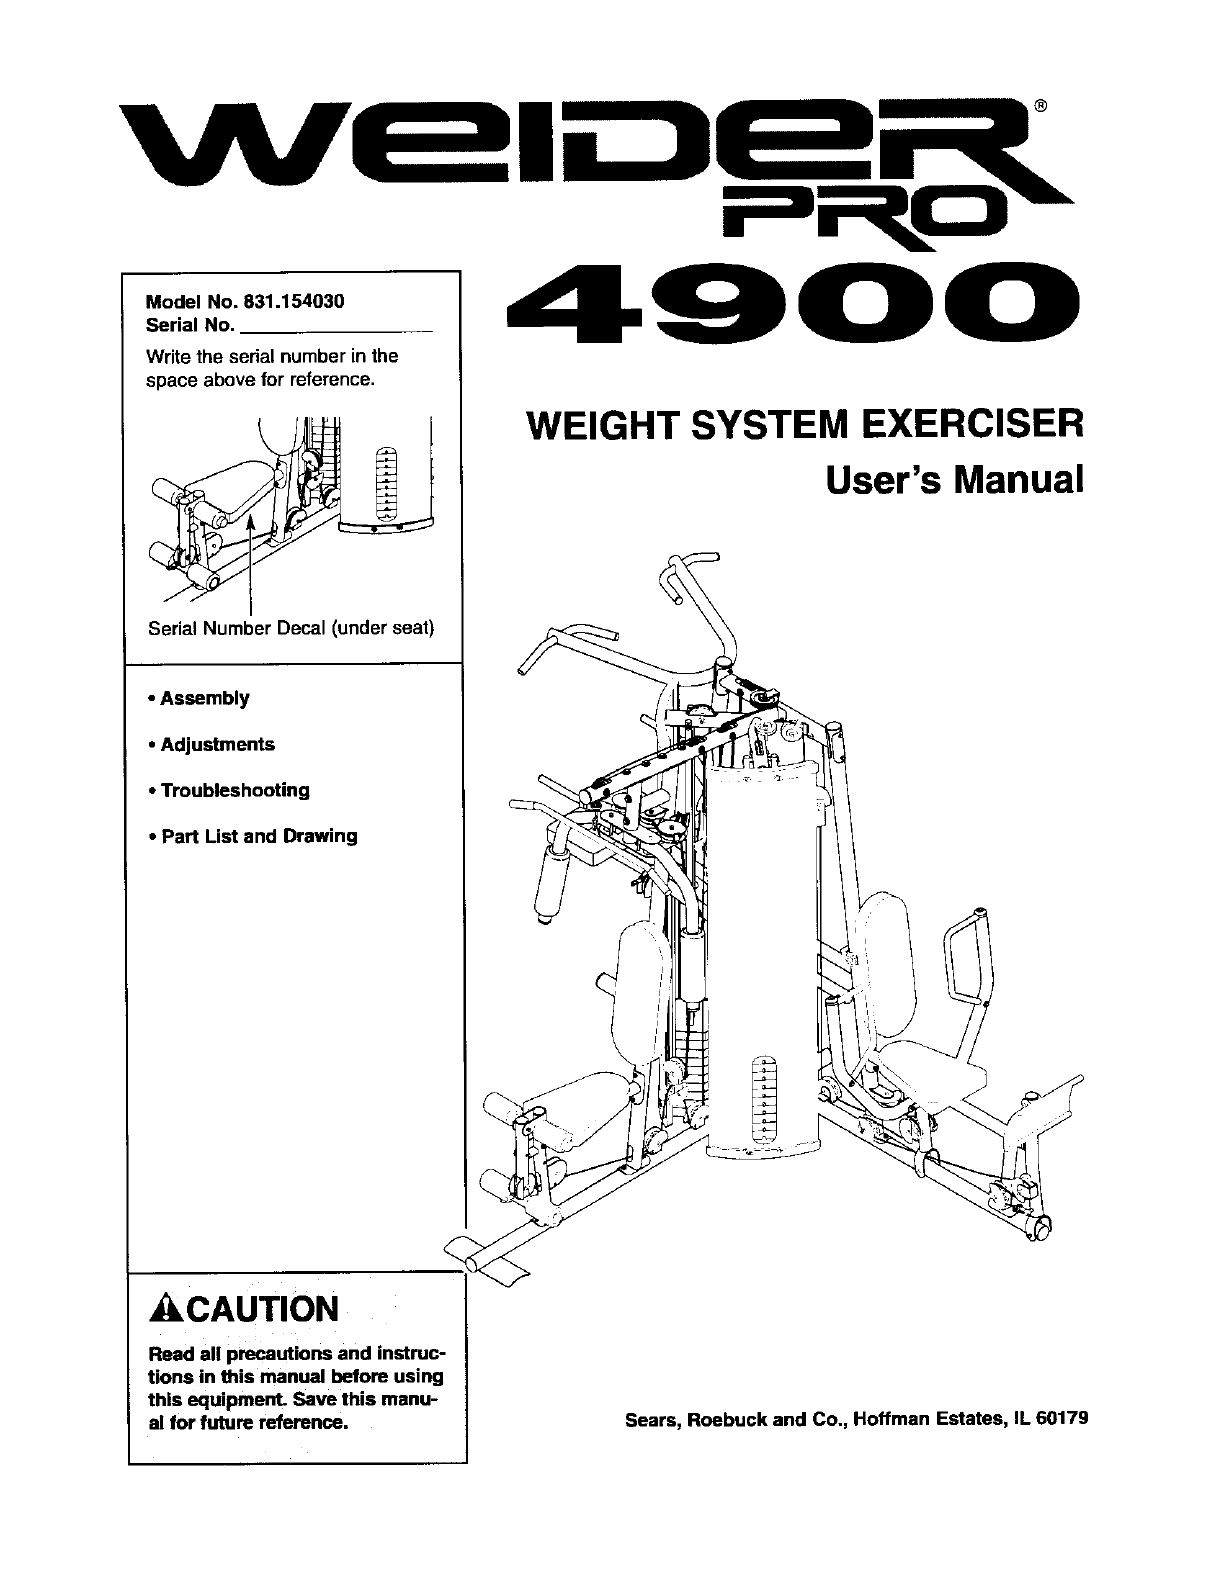 Sears Fitness Equipment 831.15403 User Guide